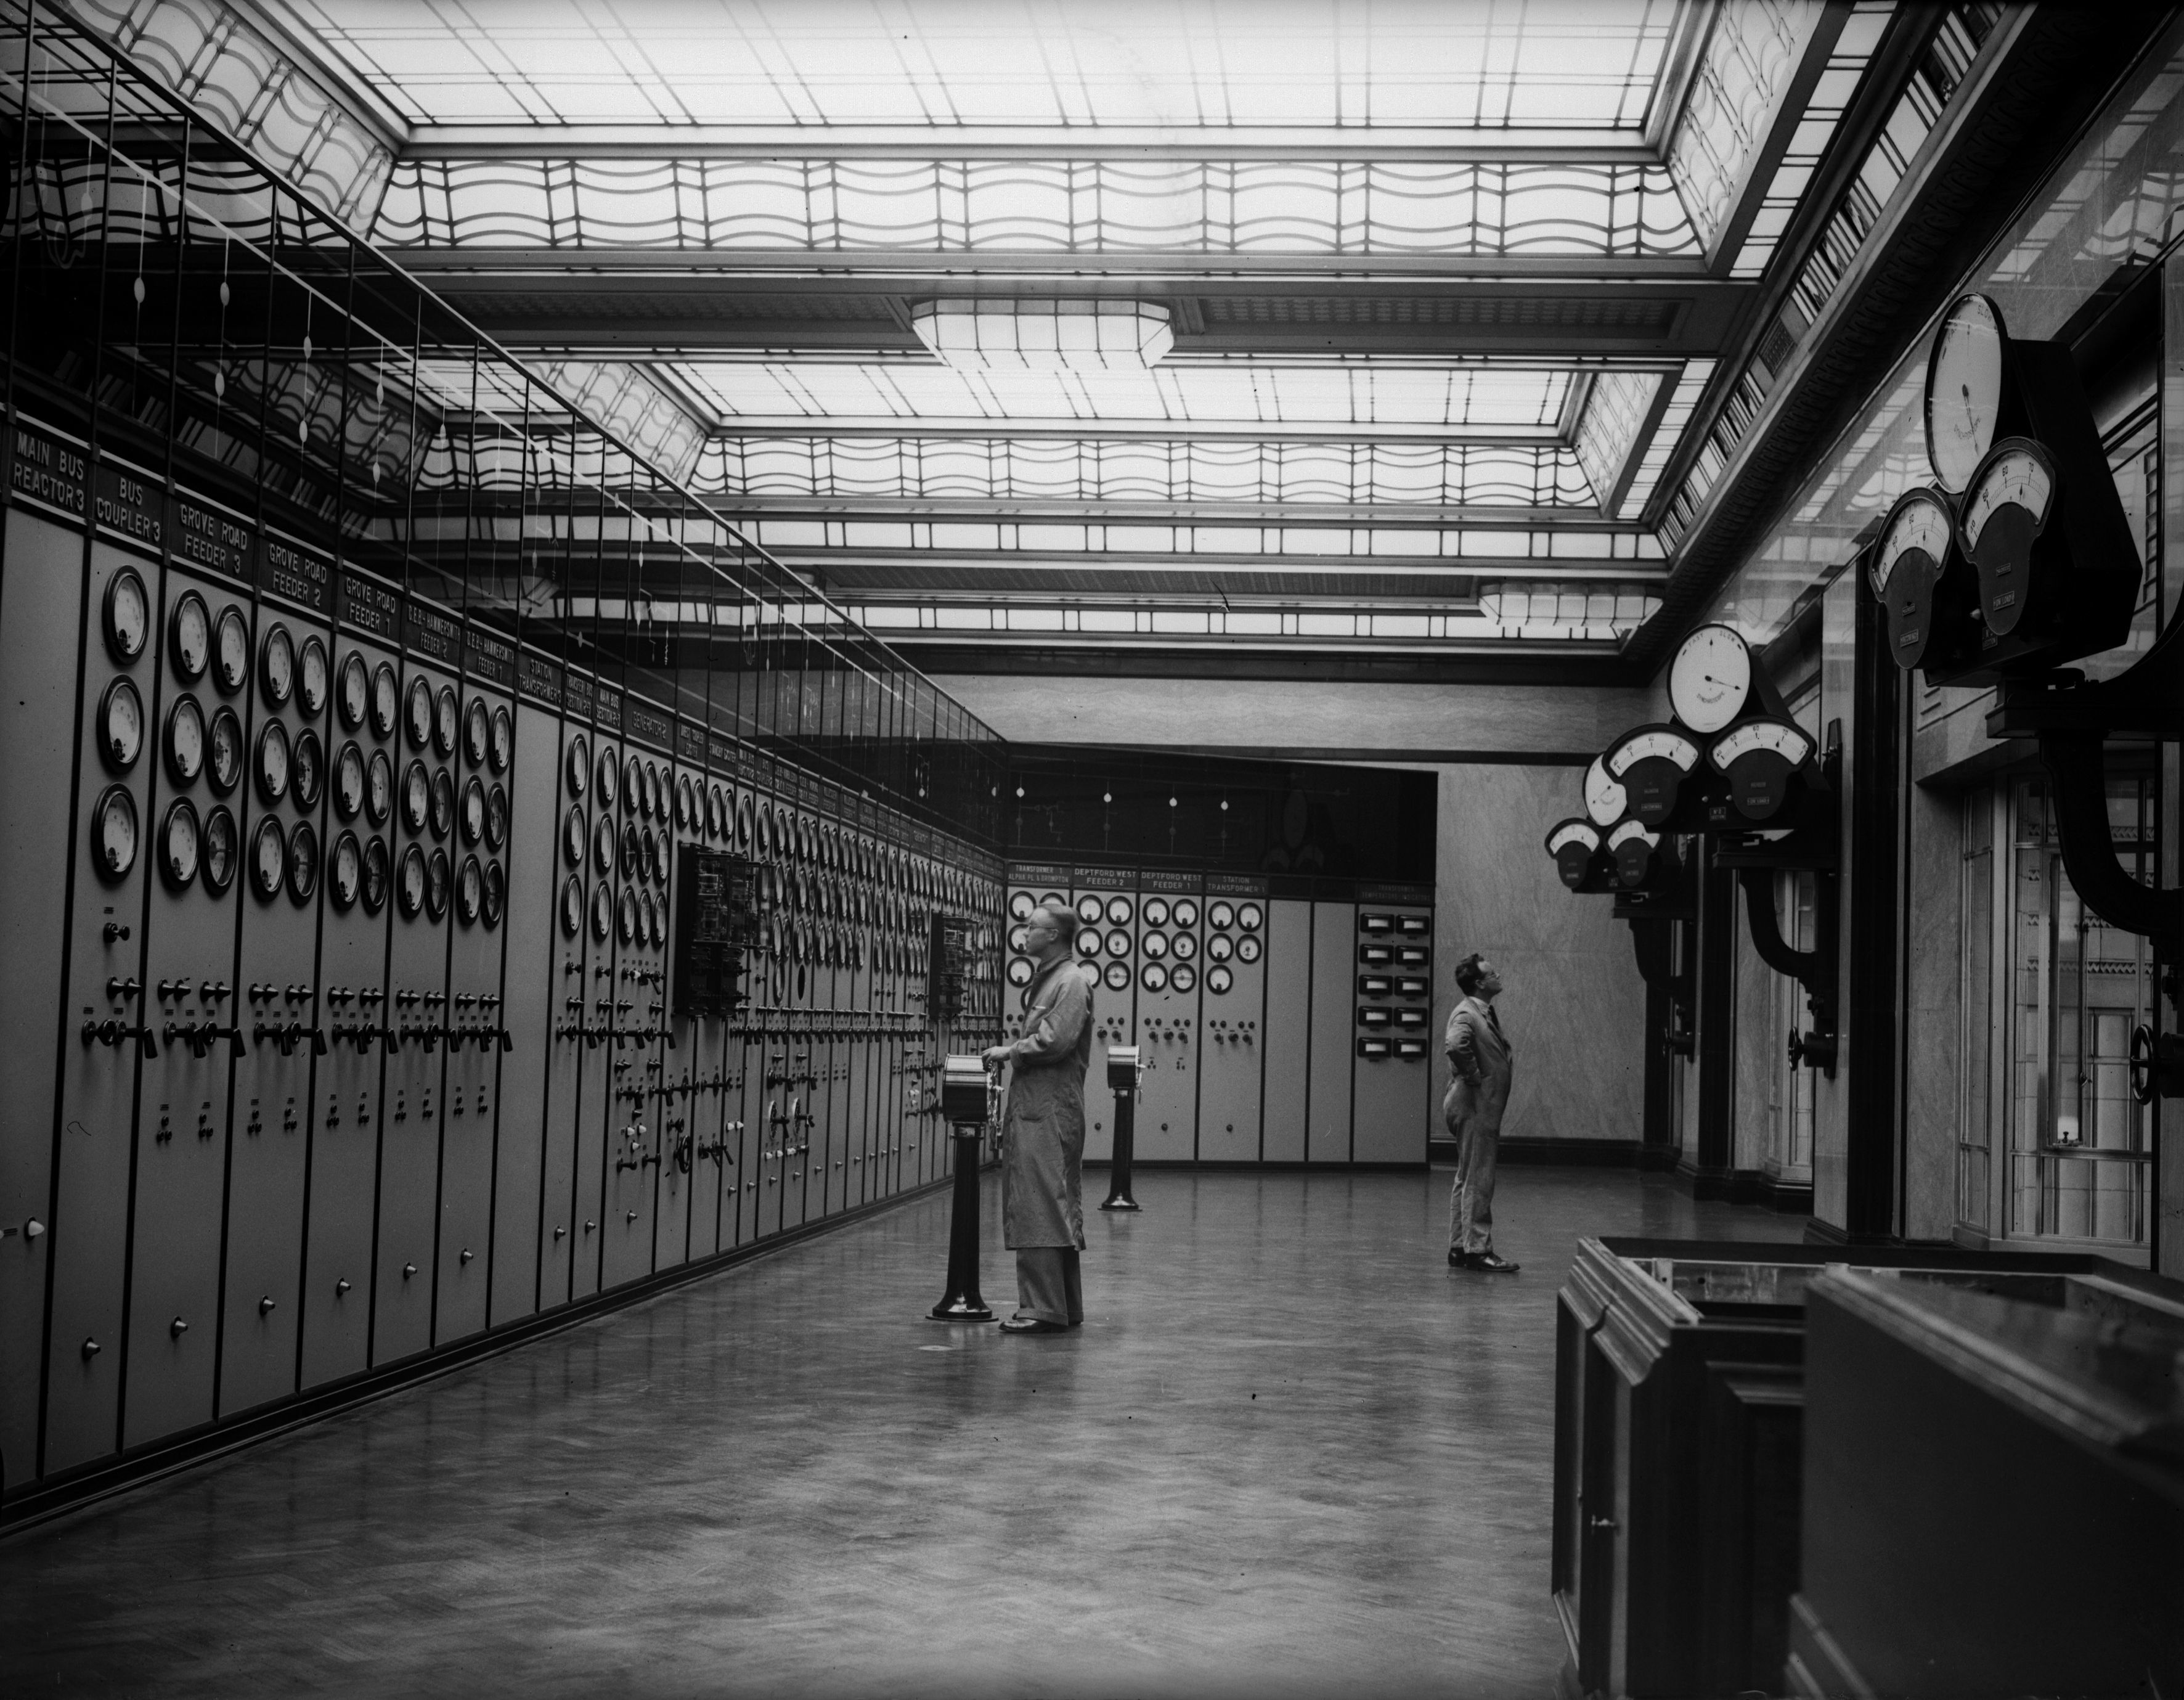 10th July 1933: The control room of Battersea Power Station, from which the feeders supply various regions of London with electricity. (Photo by Fox Photos/Getty Images)